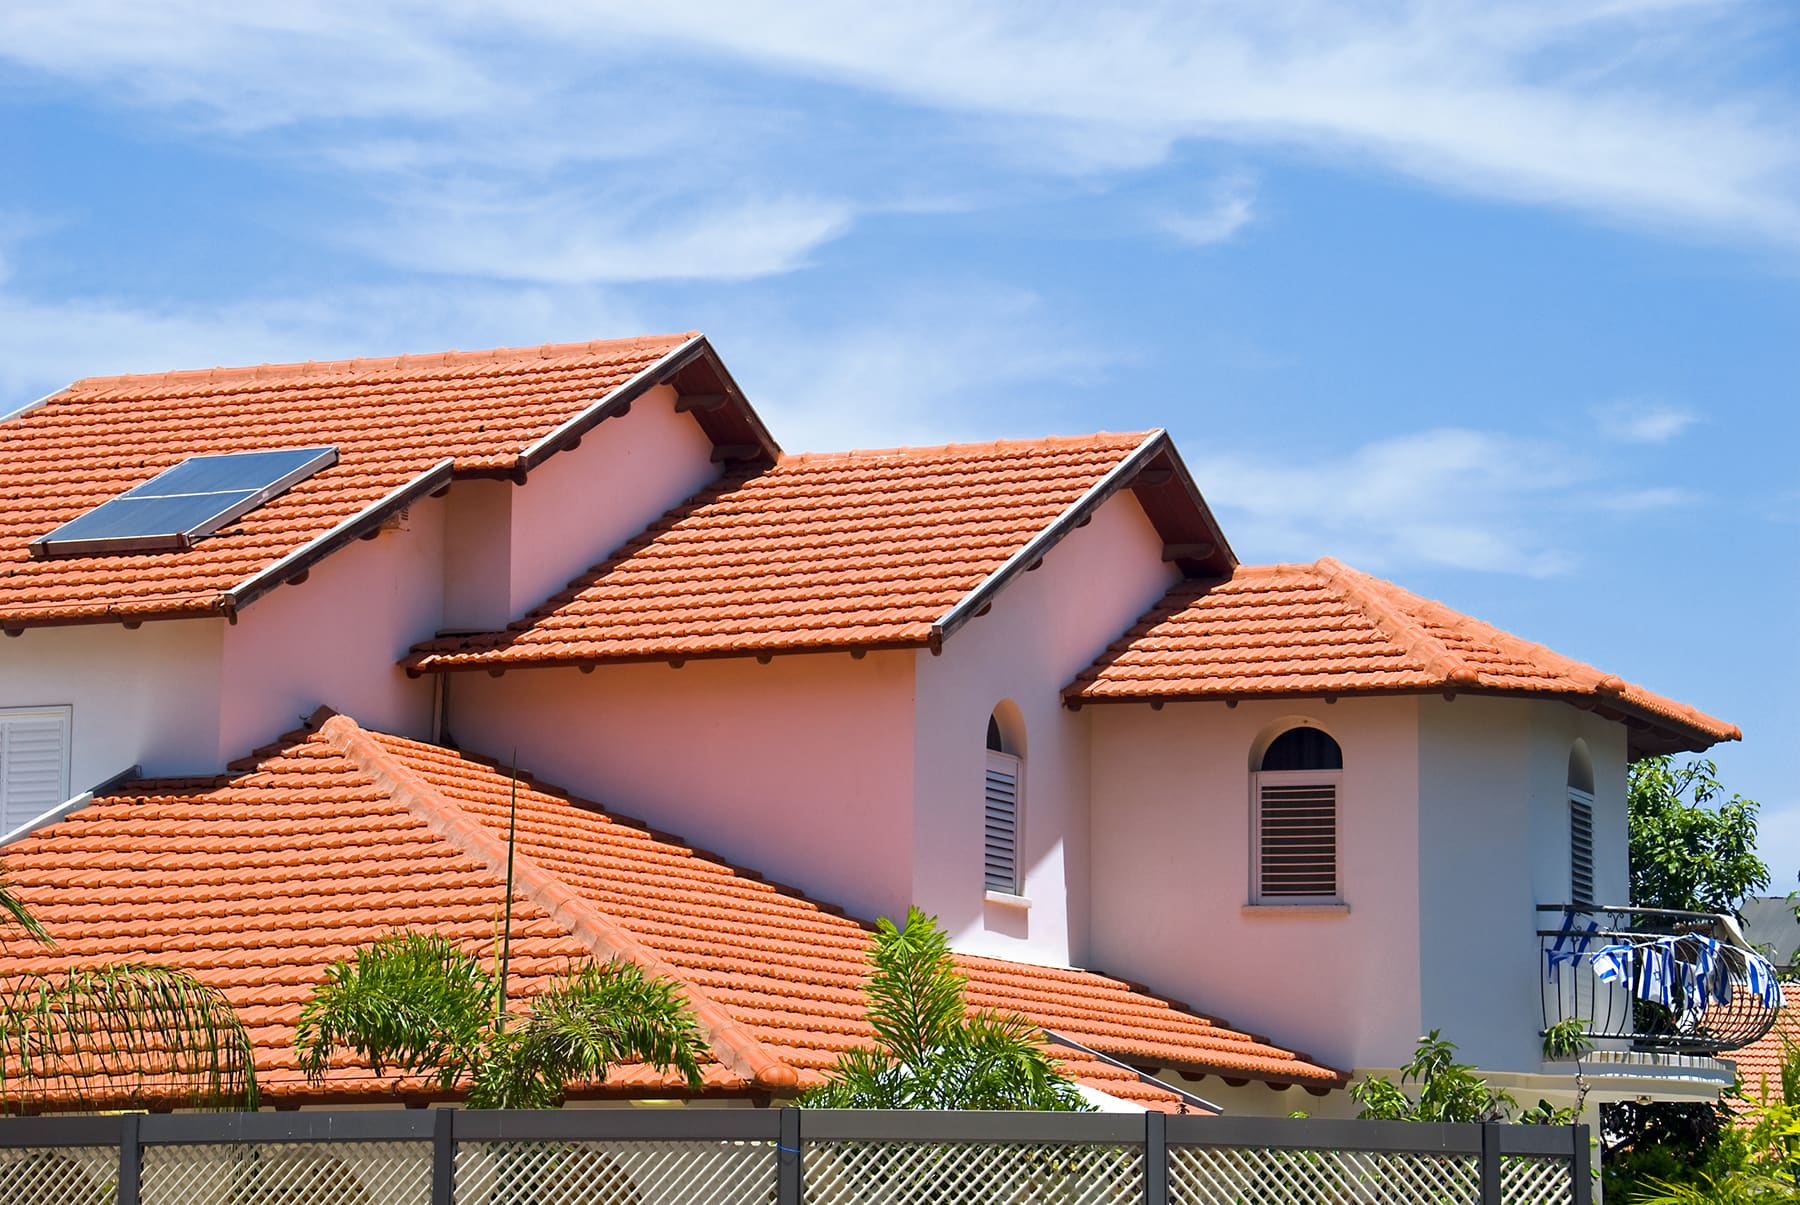 cost of new roof 1000 sq ft